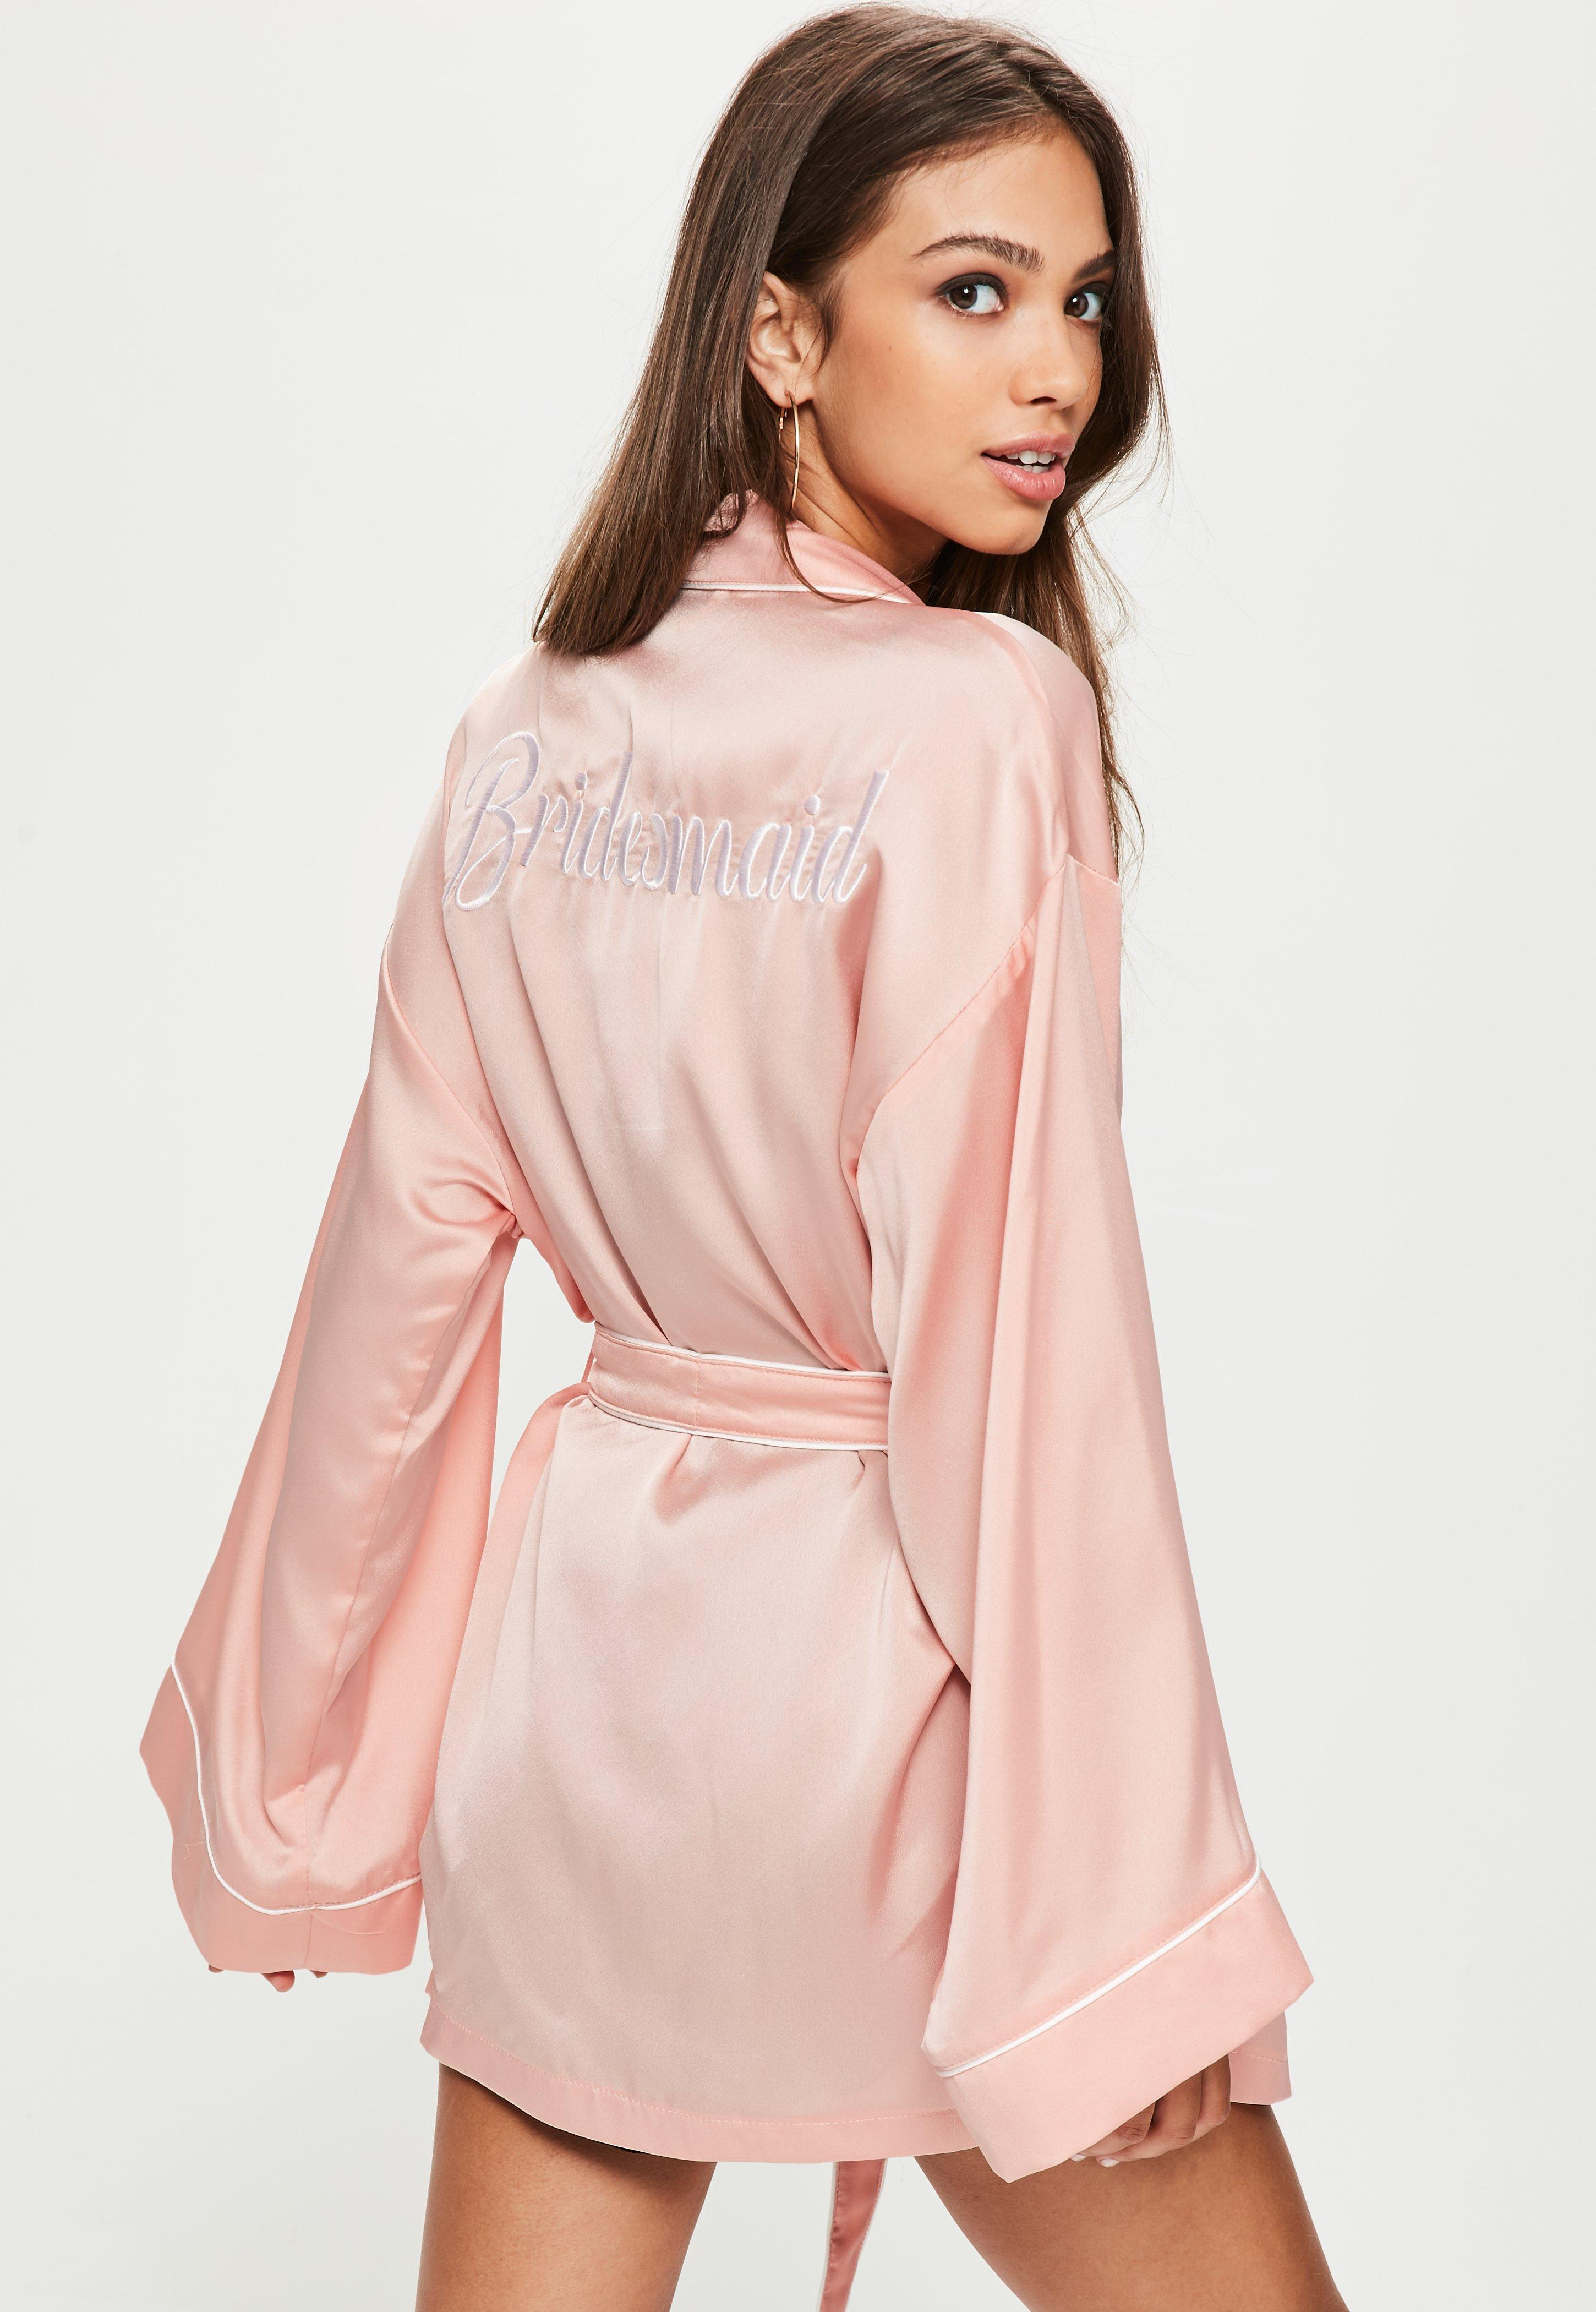 Women's Robes, House Coats & Night Gowns | Missguided